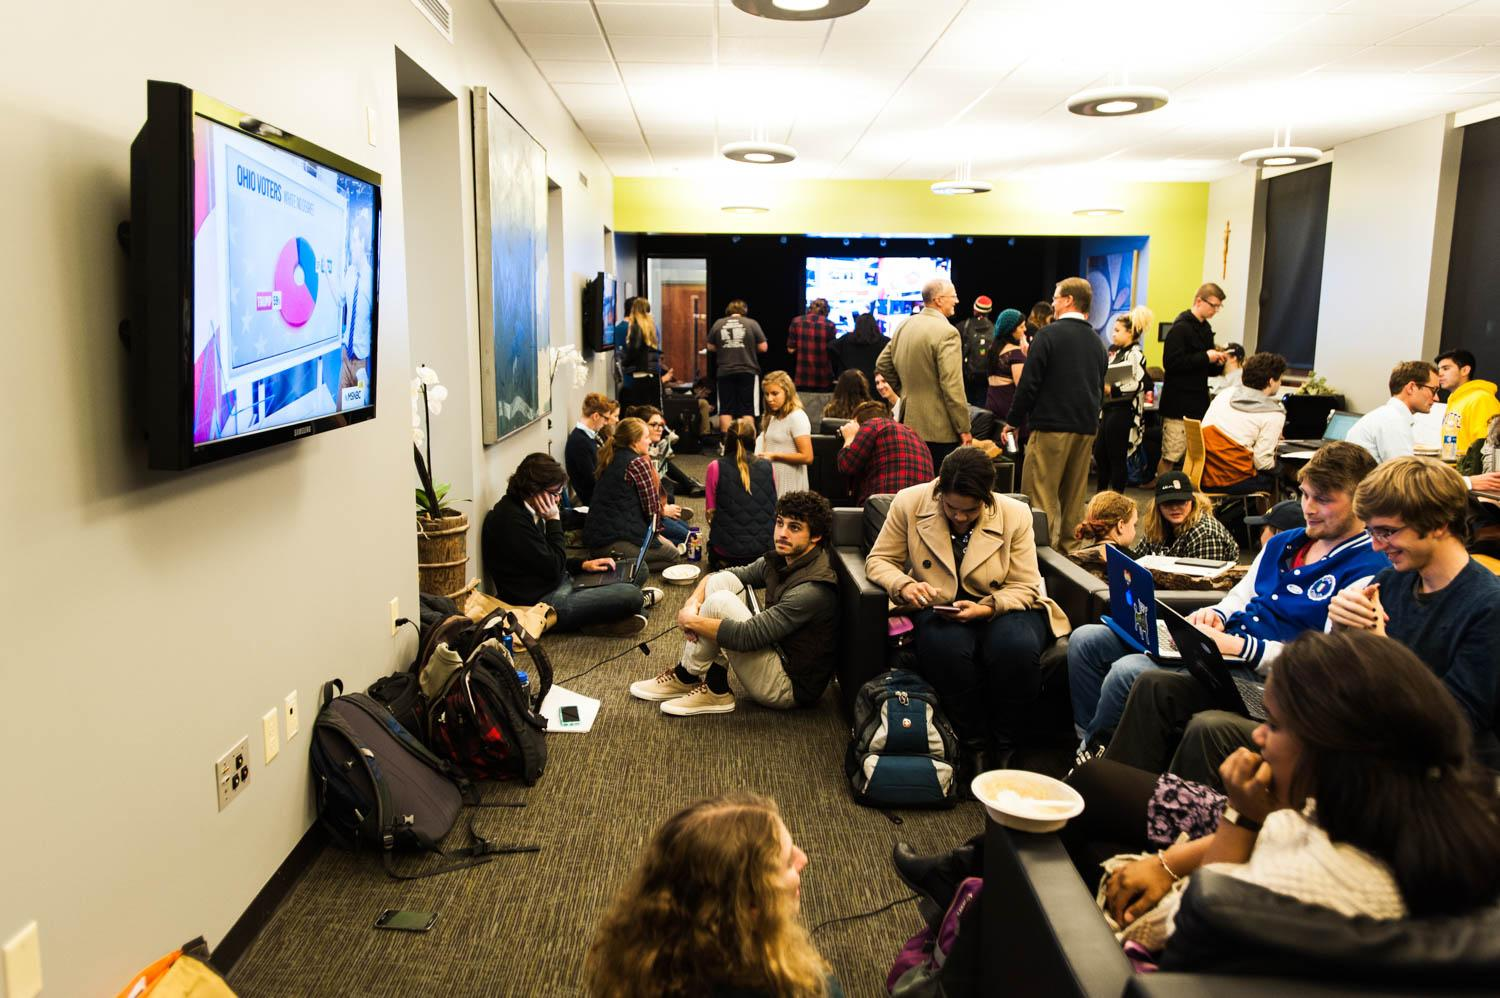 Several hundred students migrated in and out of the jPad in Johnston Hall for the Democratic viewing party, waiting anxiously to hear the presidential results. Photo by Mike Carpenter/michael.carpenter@marquette.edu